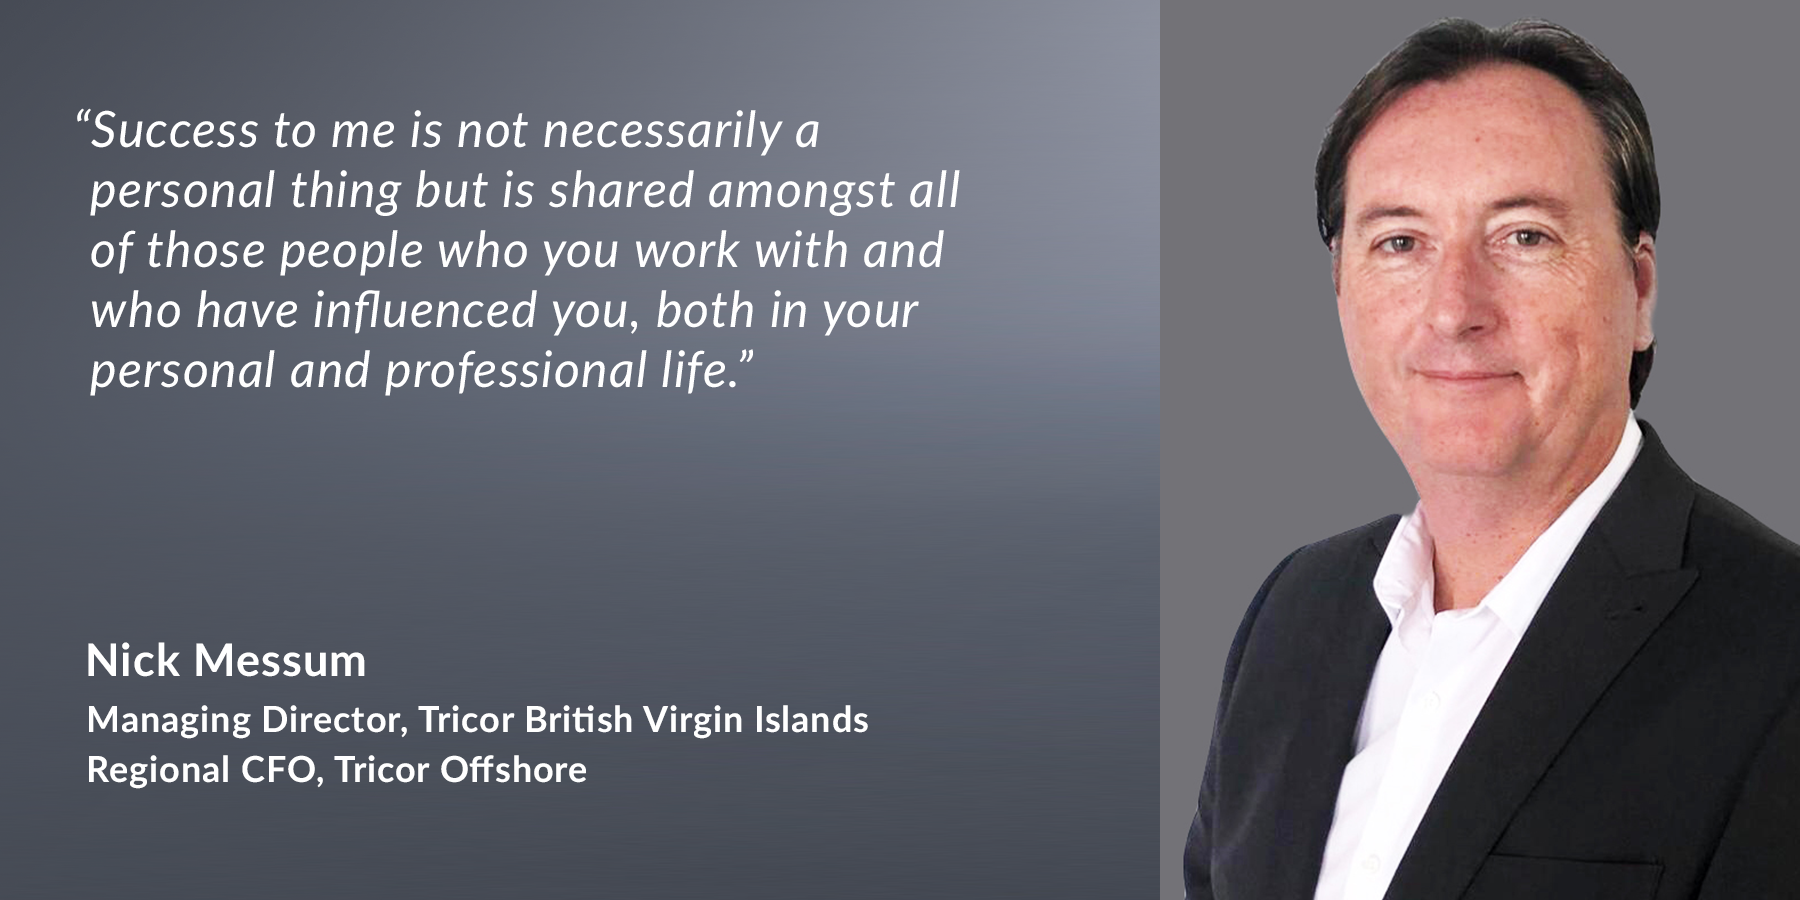 Nick Messum – Managing Director of Tricor BVI & Regional CFO of Tricor Offshore